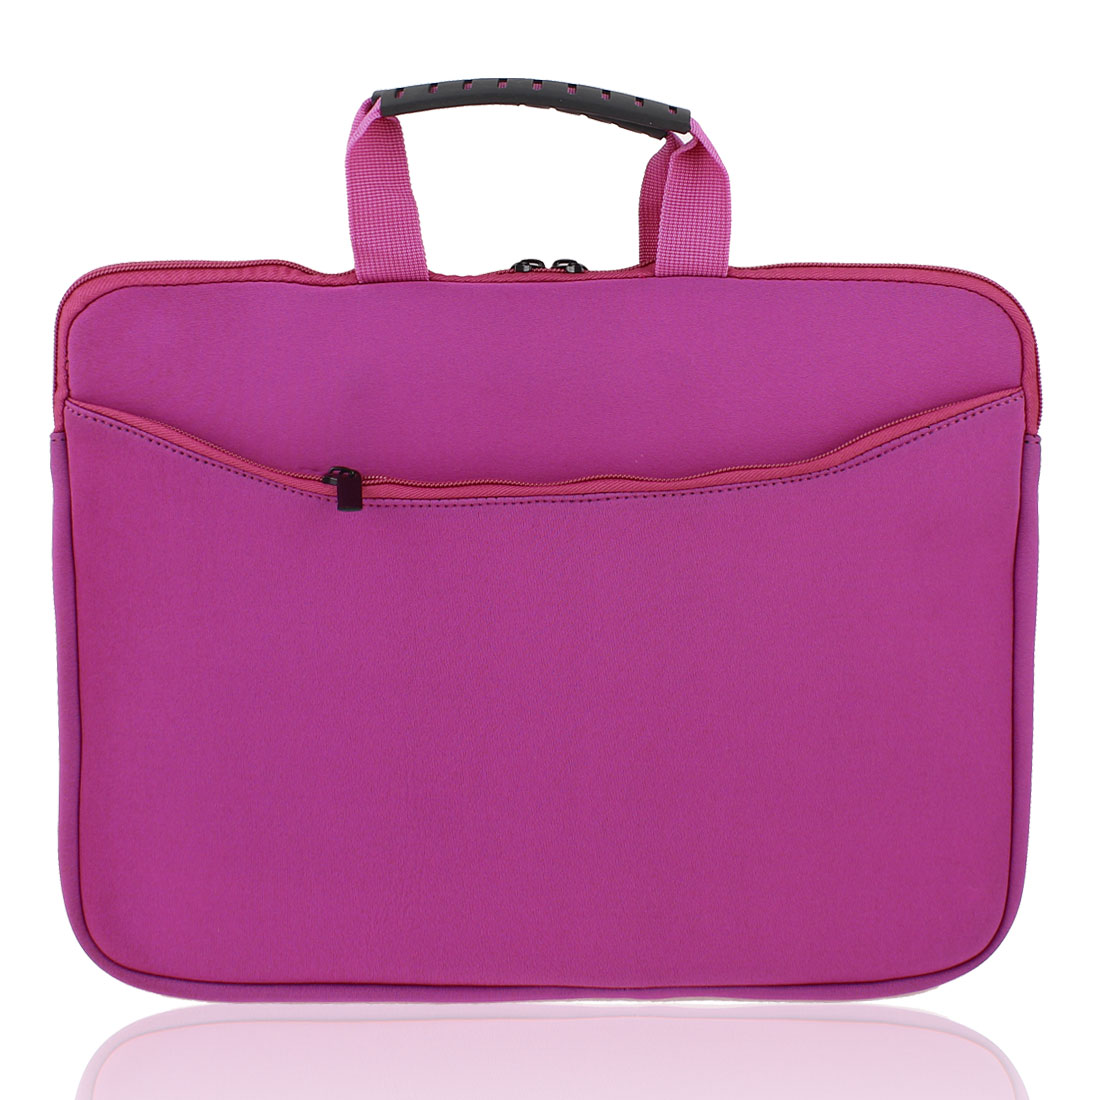 "13"" Neoprene Laptop Netbook Notebook Zipper Sleeve Case Bag Cover Pouch Fuchsia"